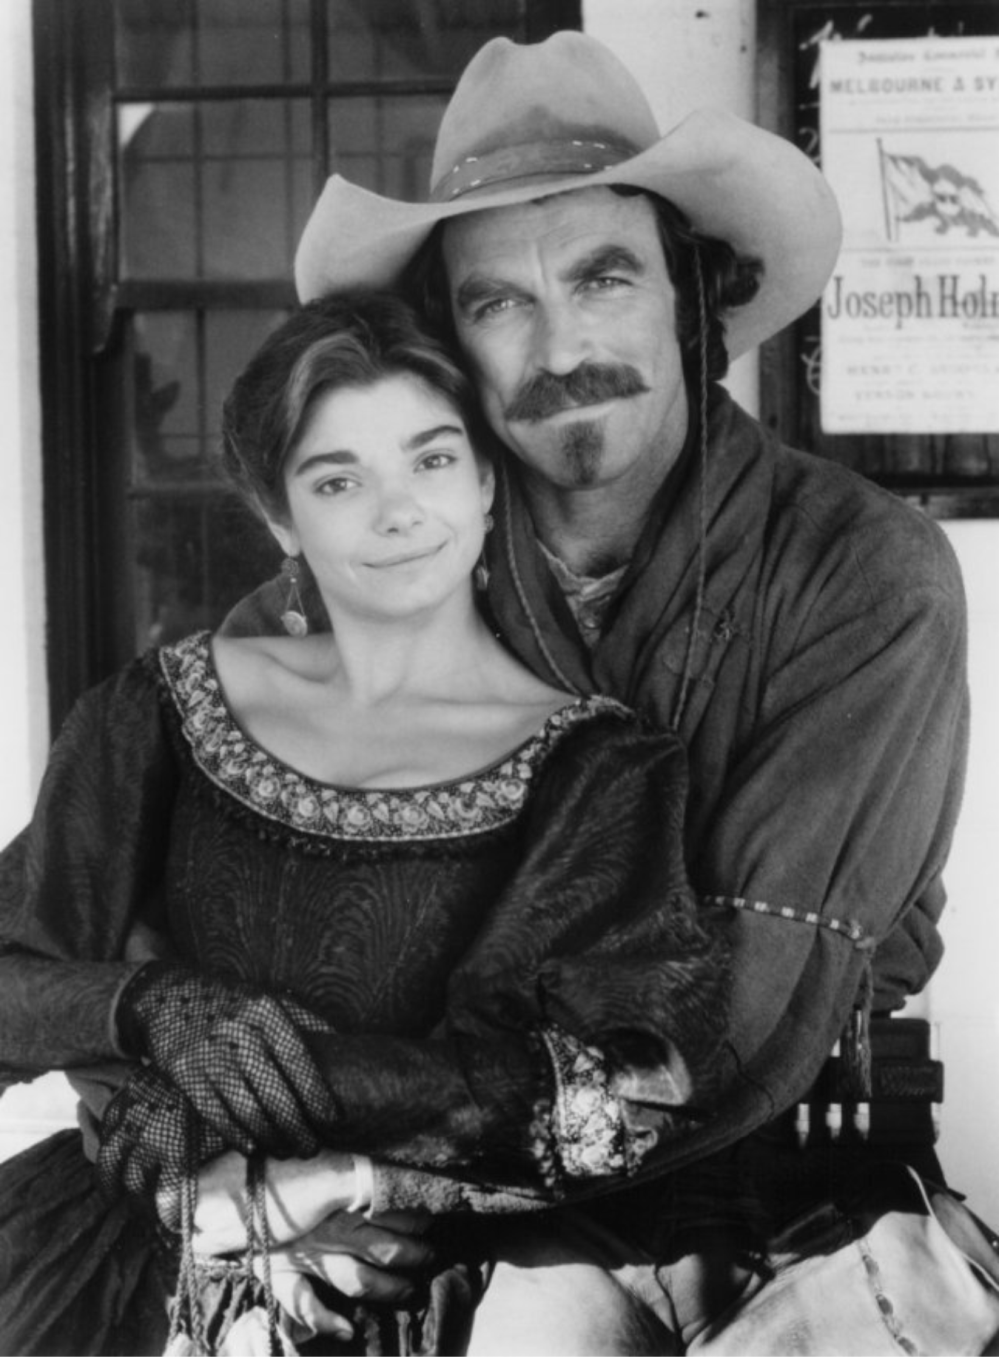 QUIGLEY DOWN UNDER Selleck with Laura San Giacomo 2